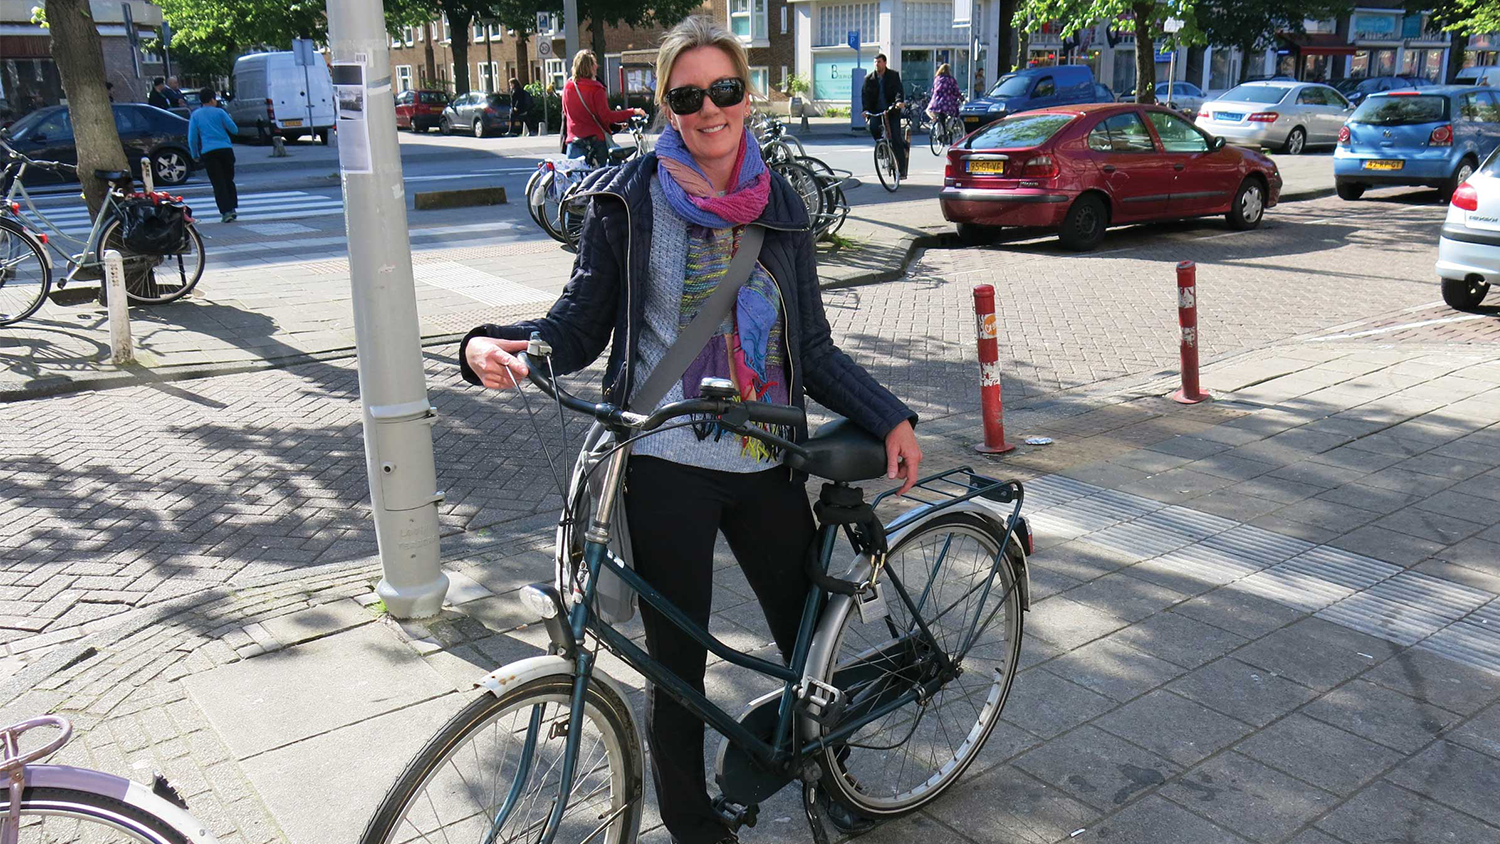 Jennifer Tooles poses with a bike on a busy street in Amsterdam.